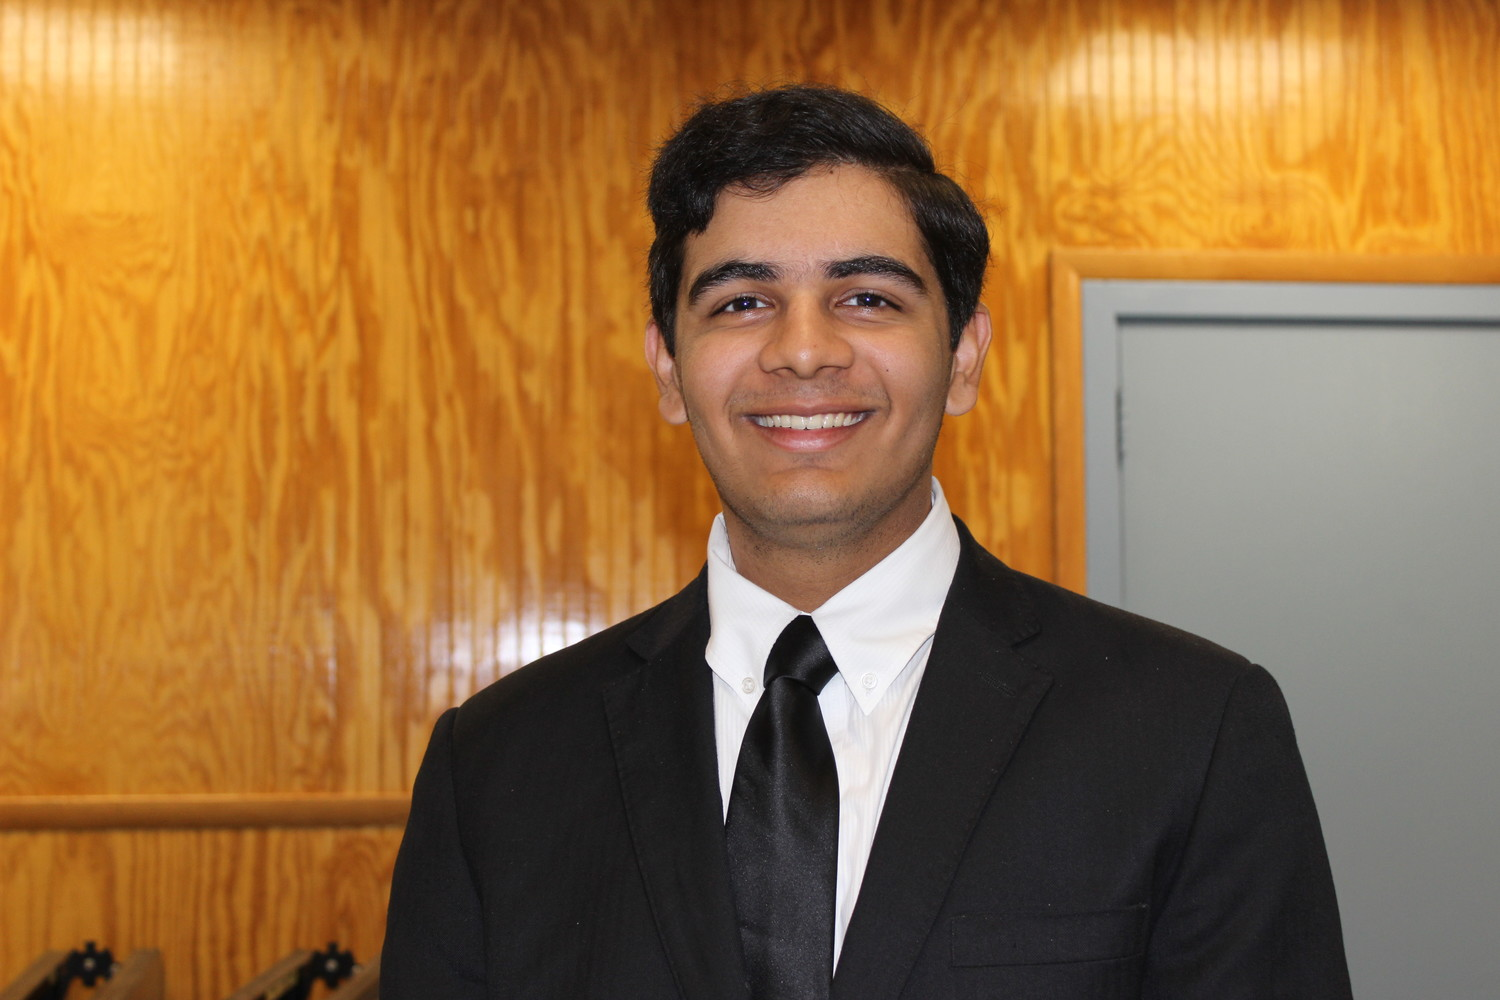 Eshan Shakrani, a junior at W. T. Clarke High School, shared with the Herald his goal of breaking into the field of computer engineering during a mock job interview.